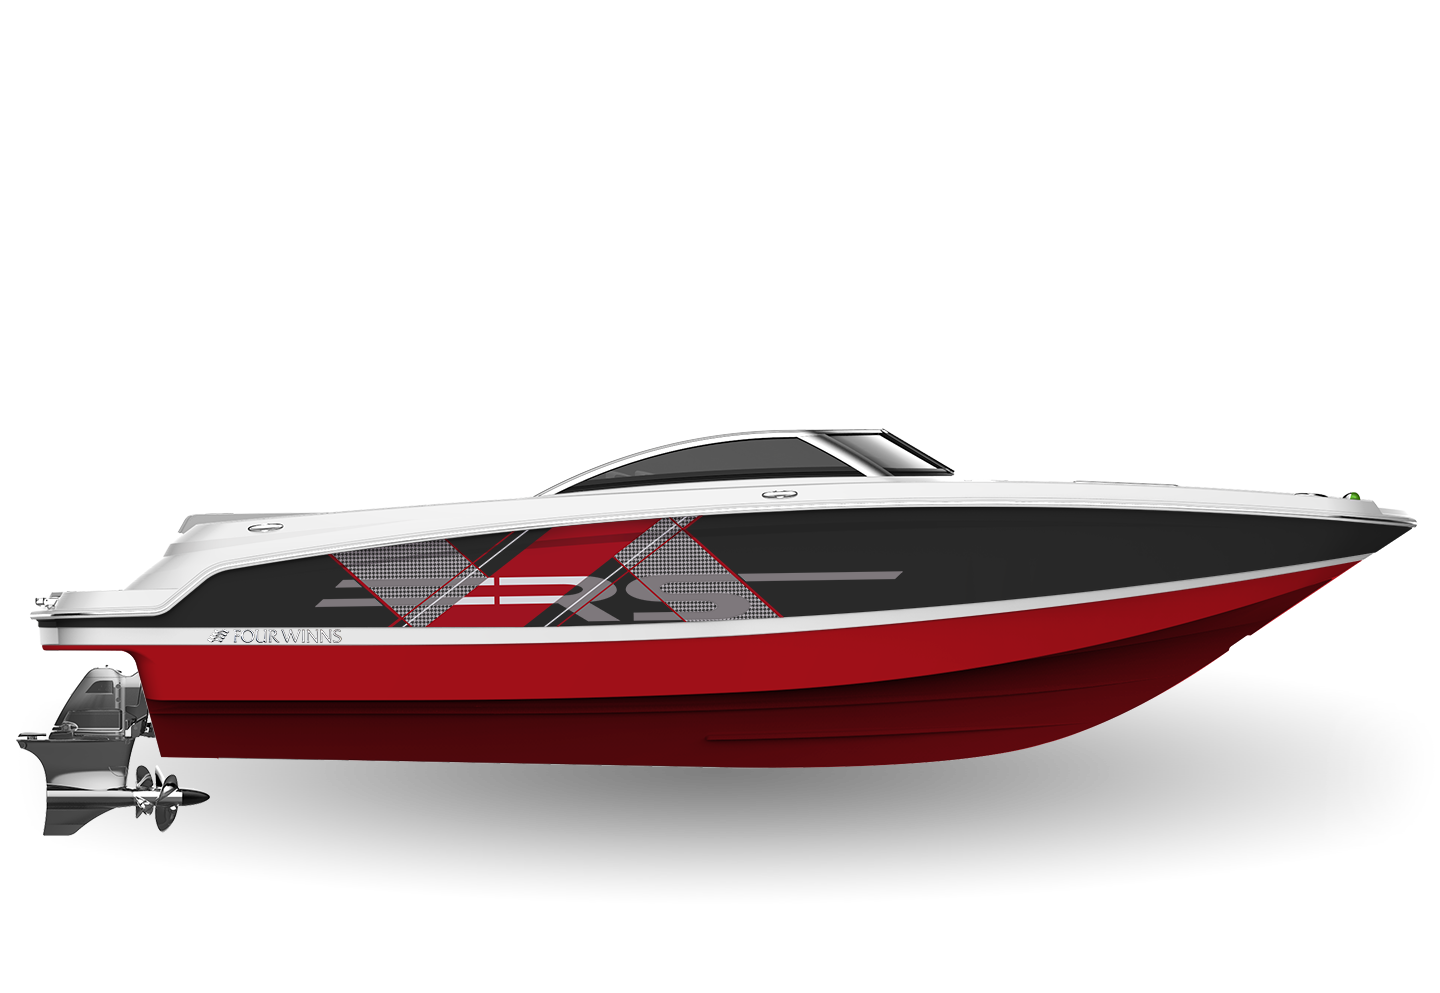 speed boat png transparent speed boat images #18463